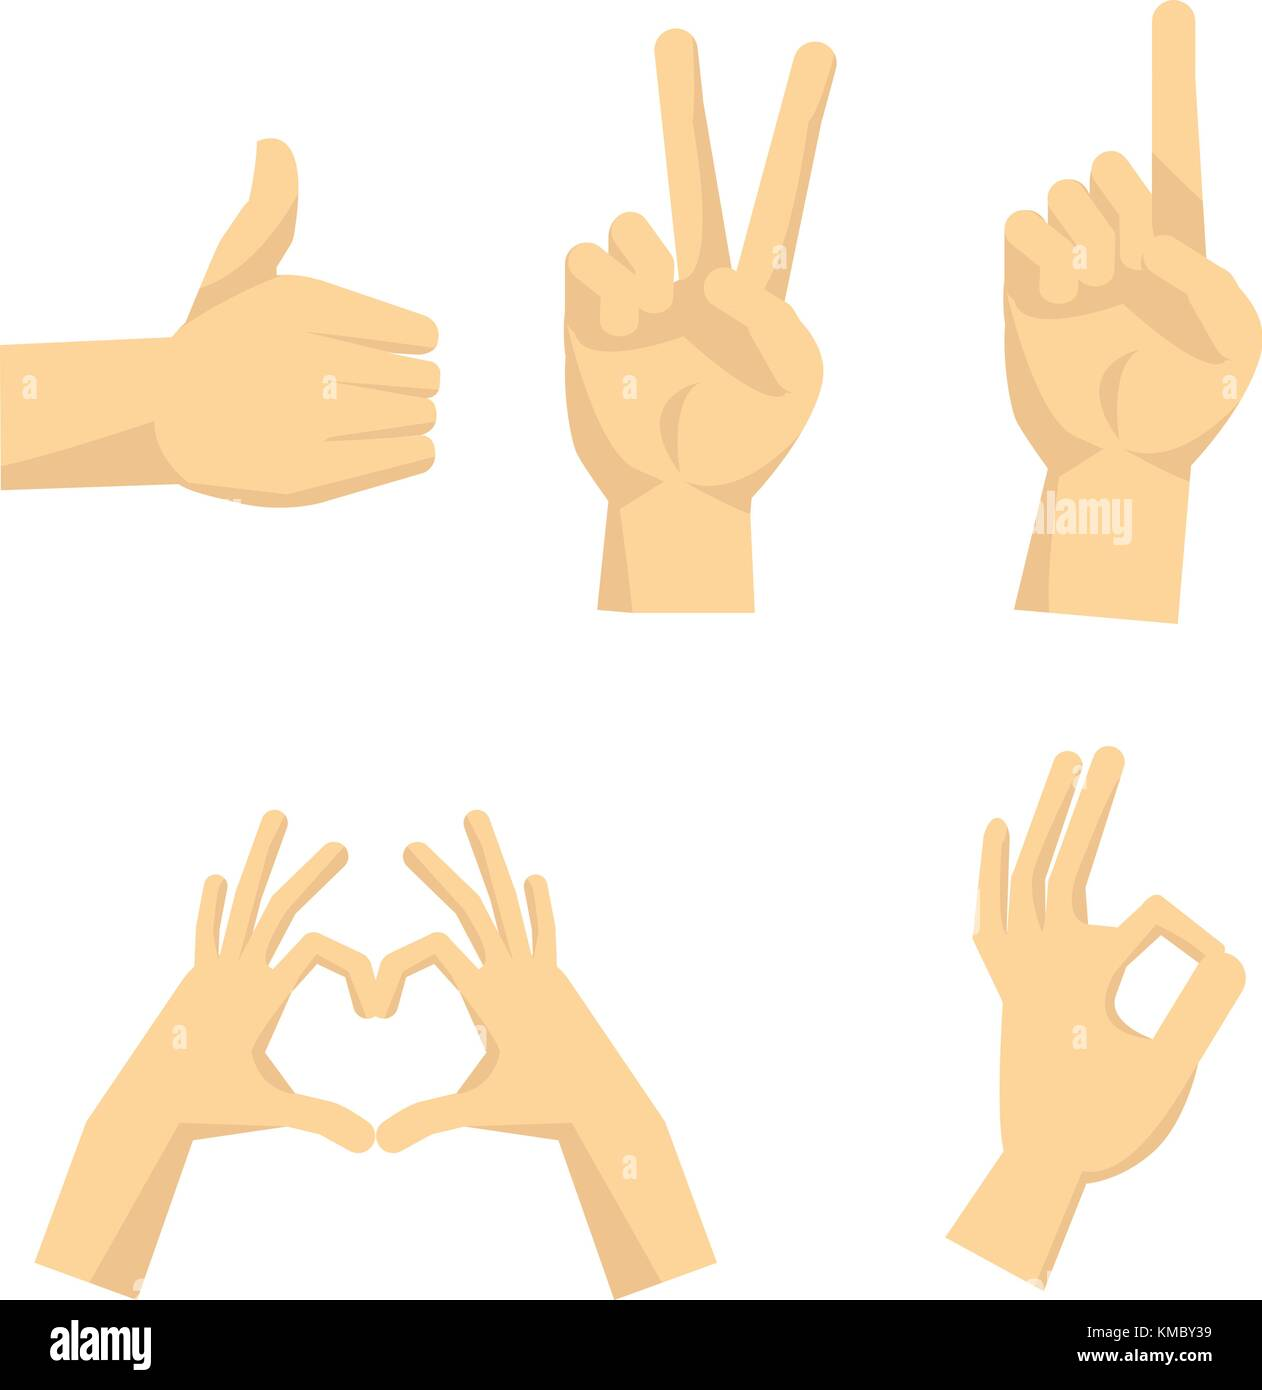 Counting Vector Vectors Stock Photos Amp Counting Vector